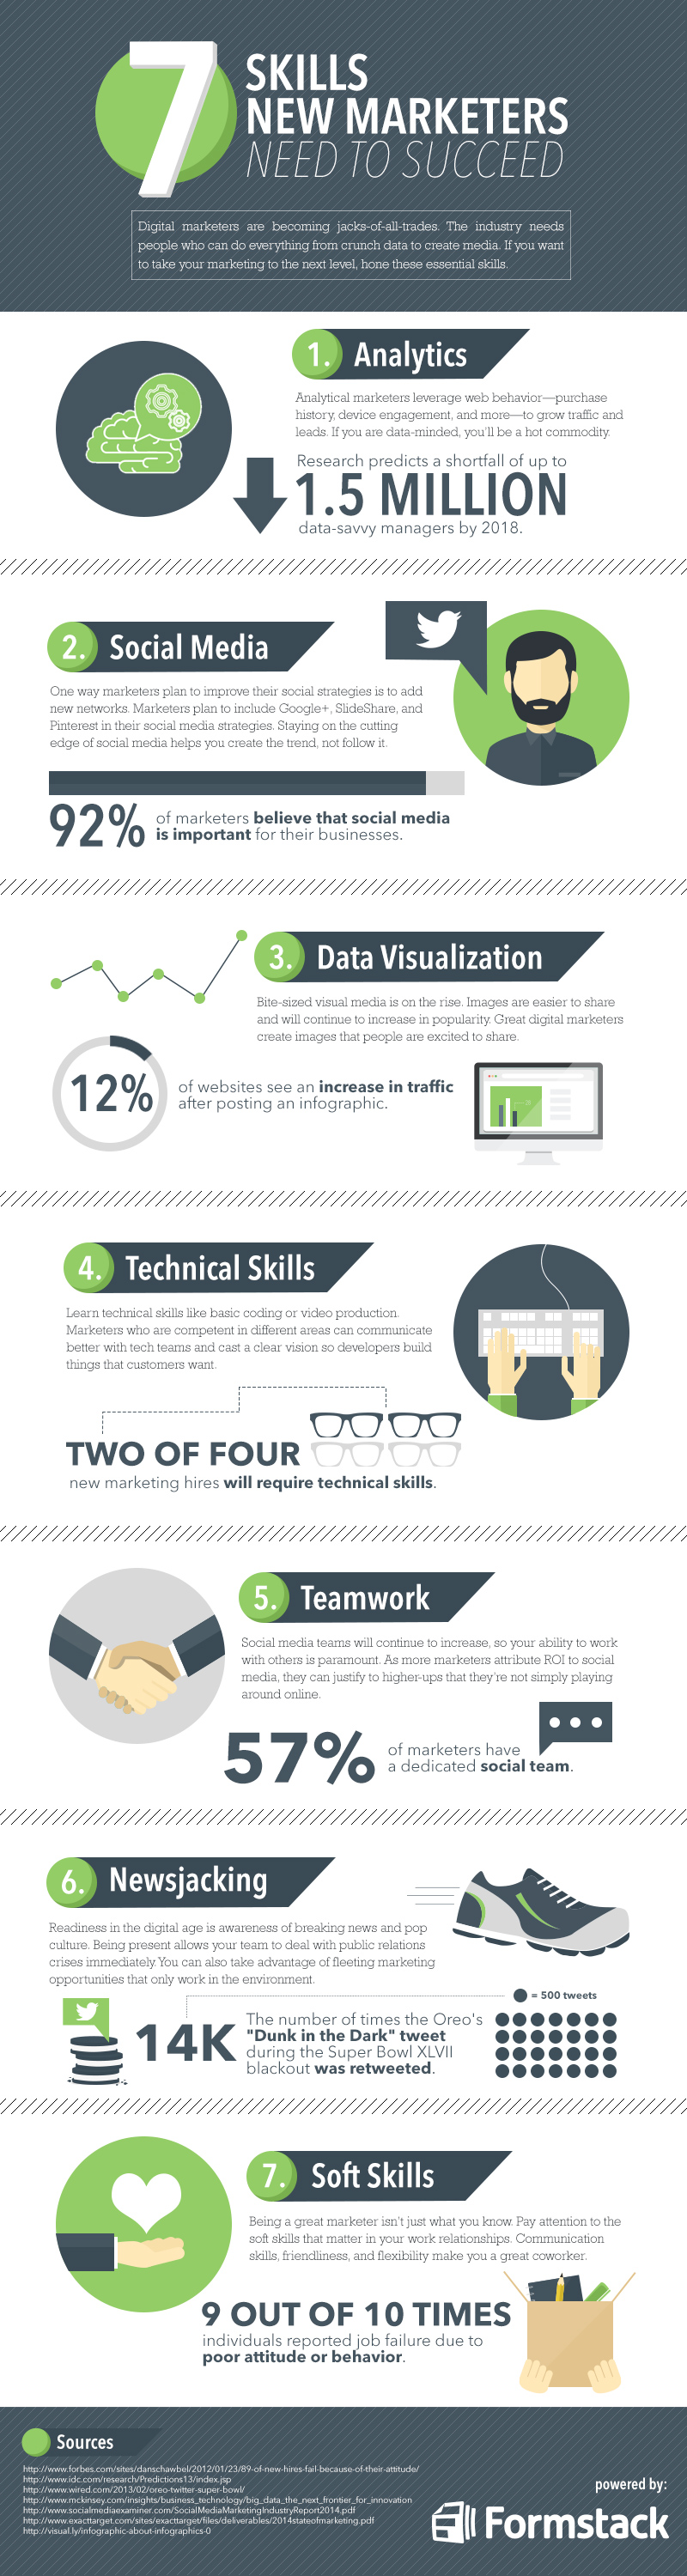 skills-for-marketers